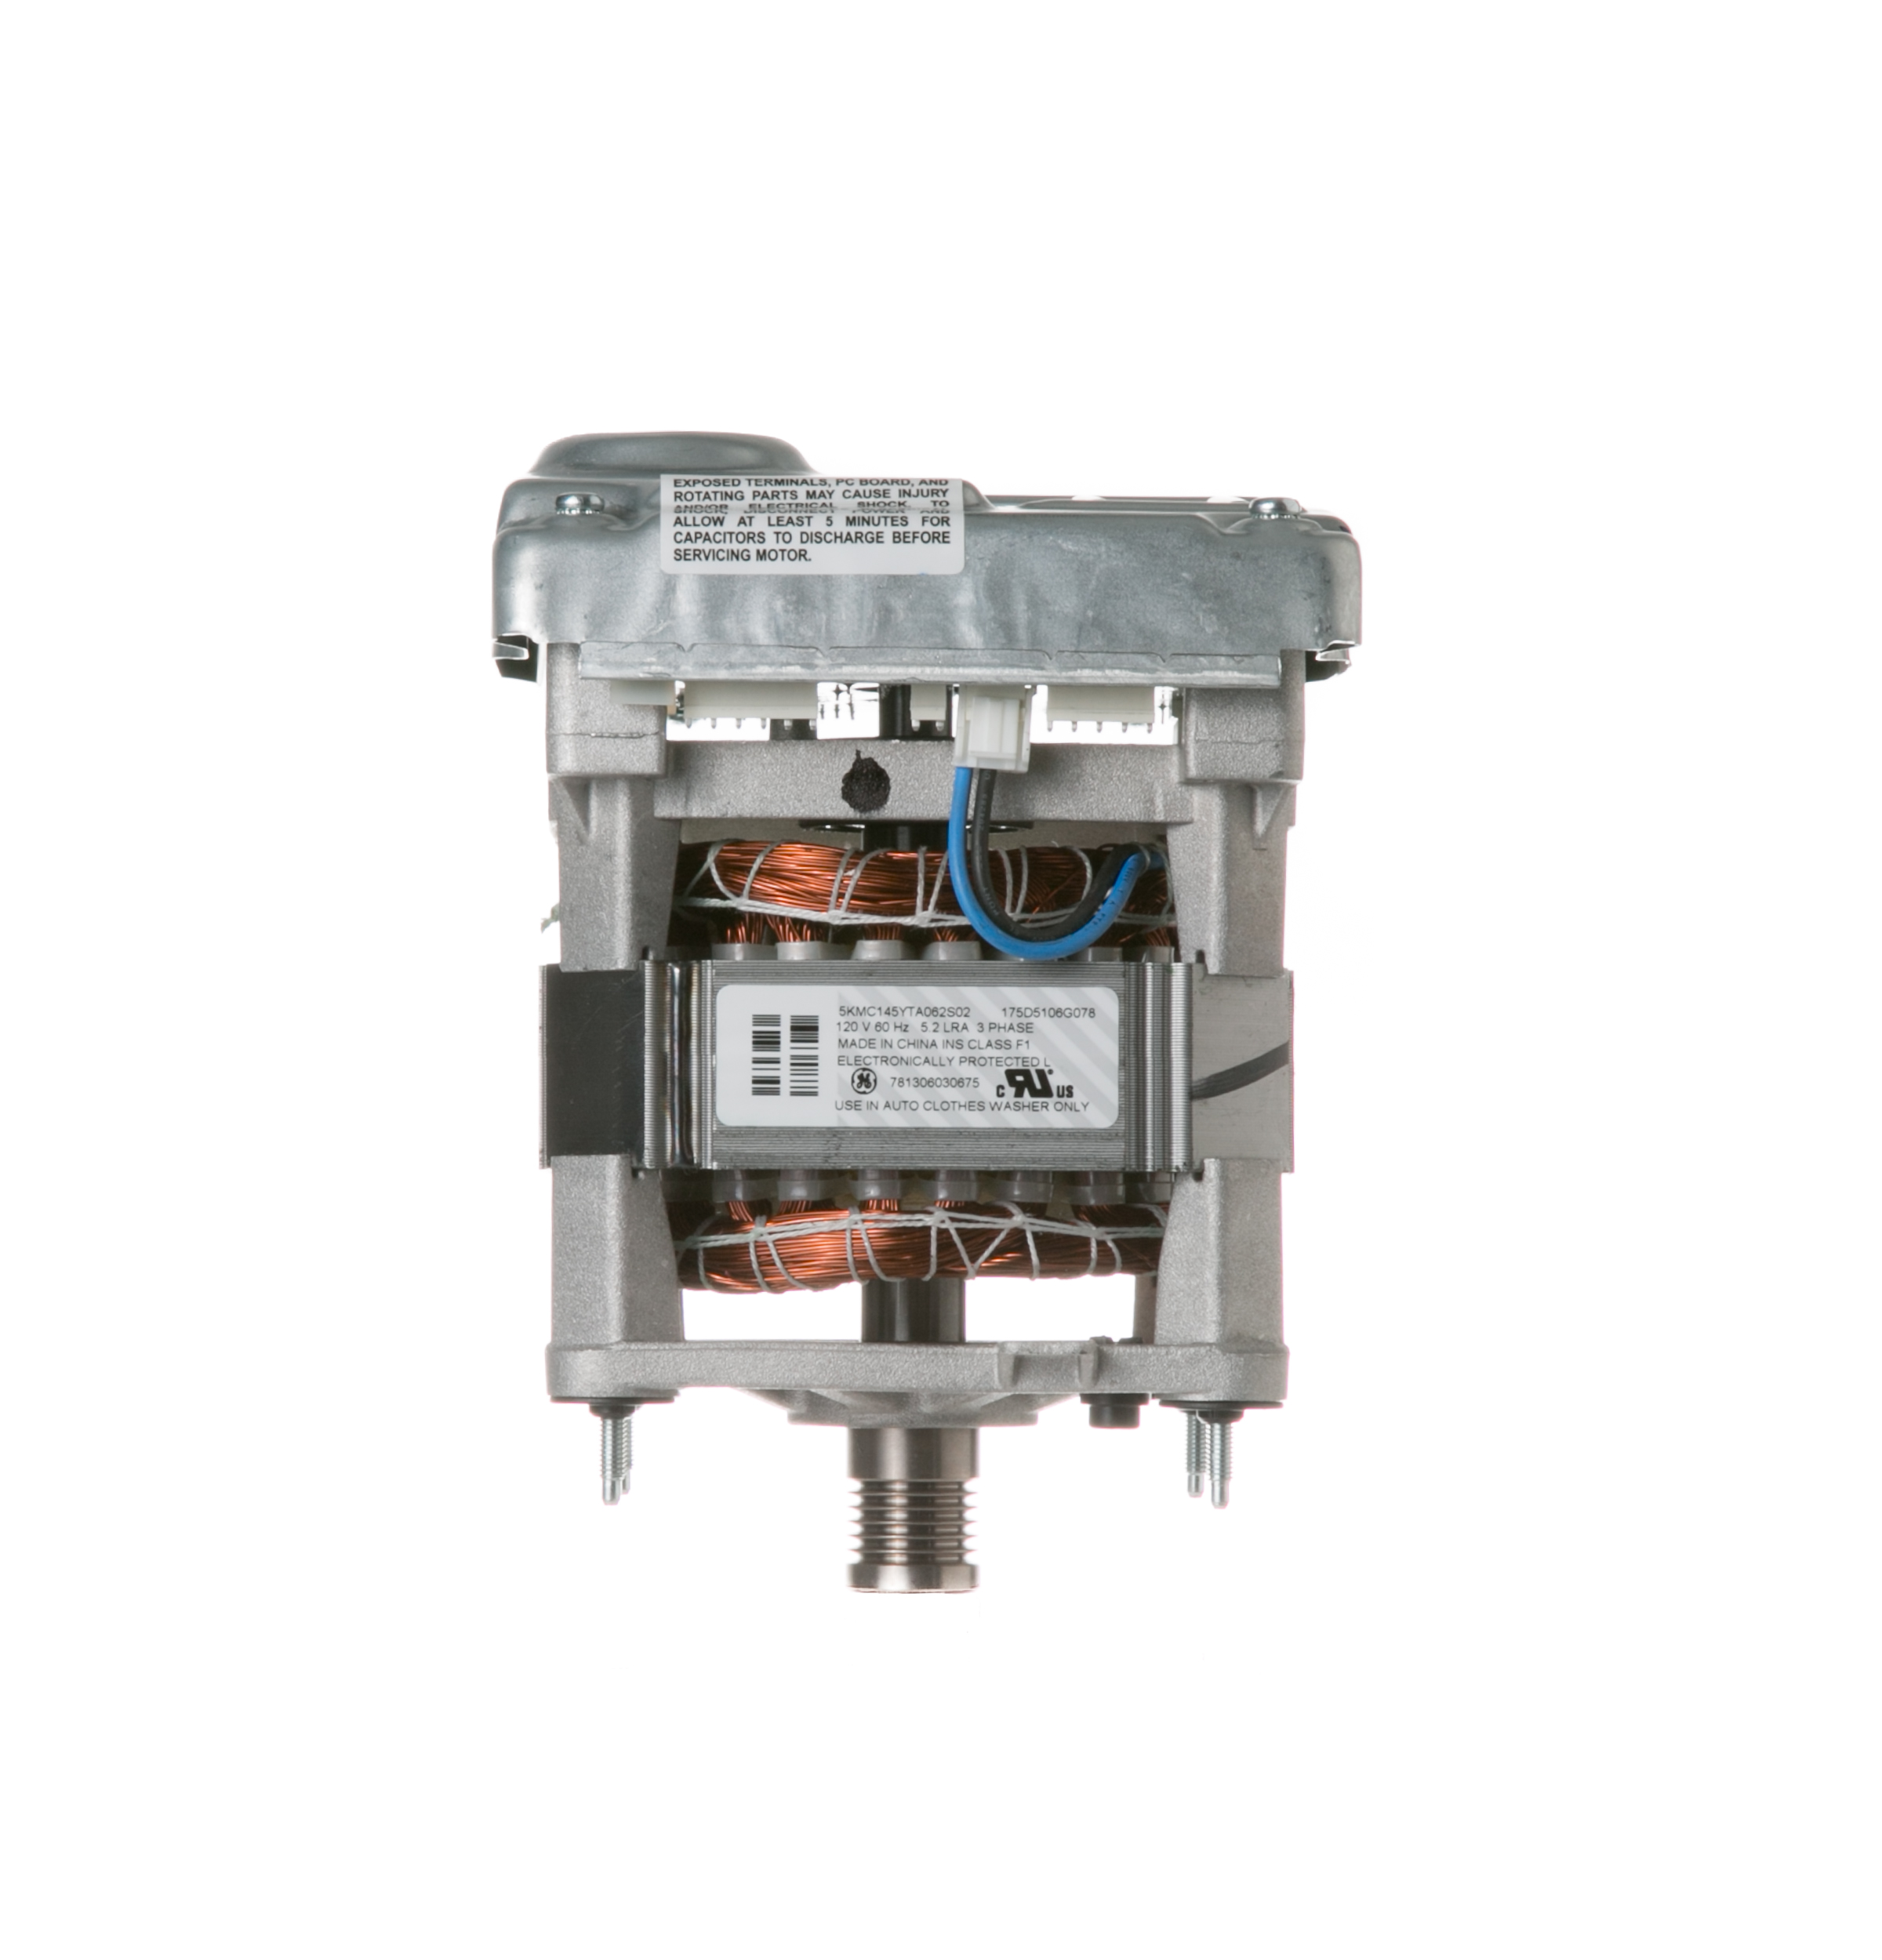 Wh20x10093 washing machine motor and inverter ge for Ge motor parts online